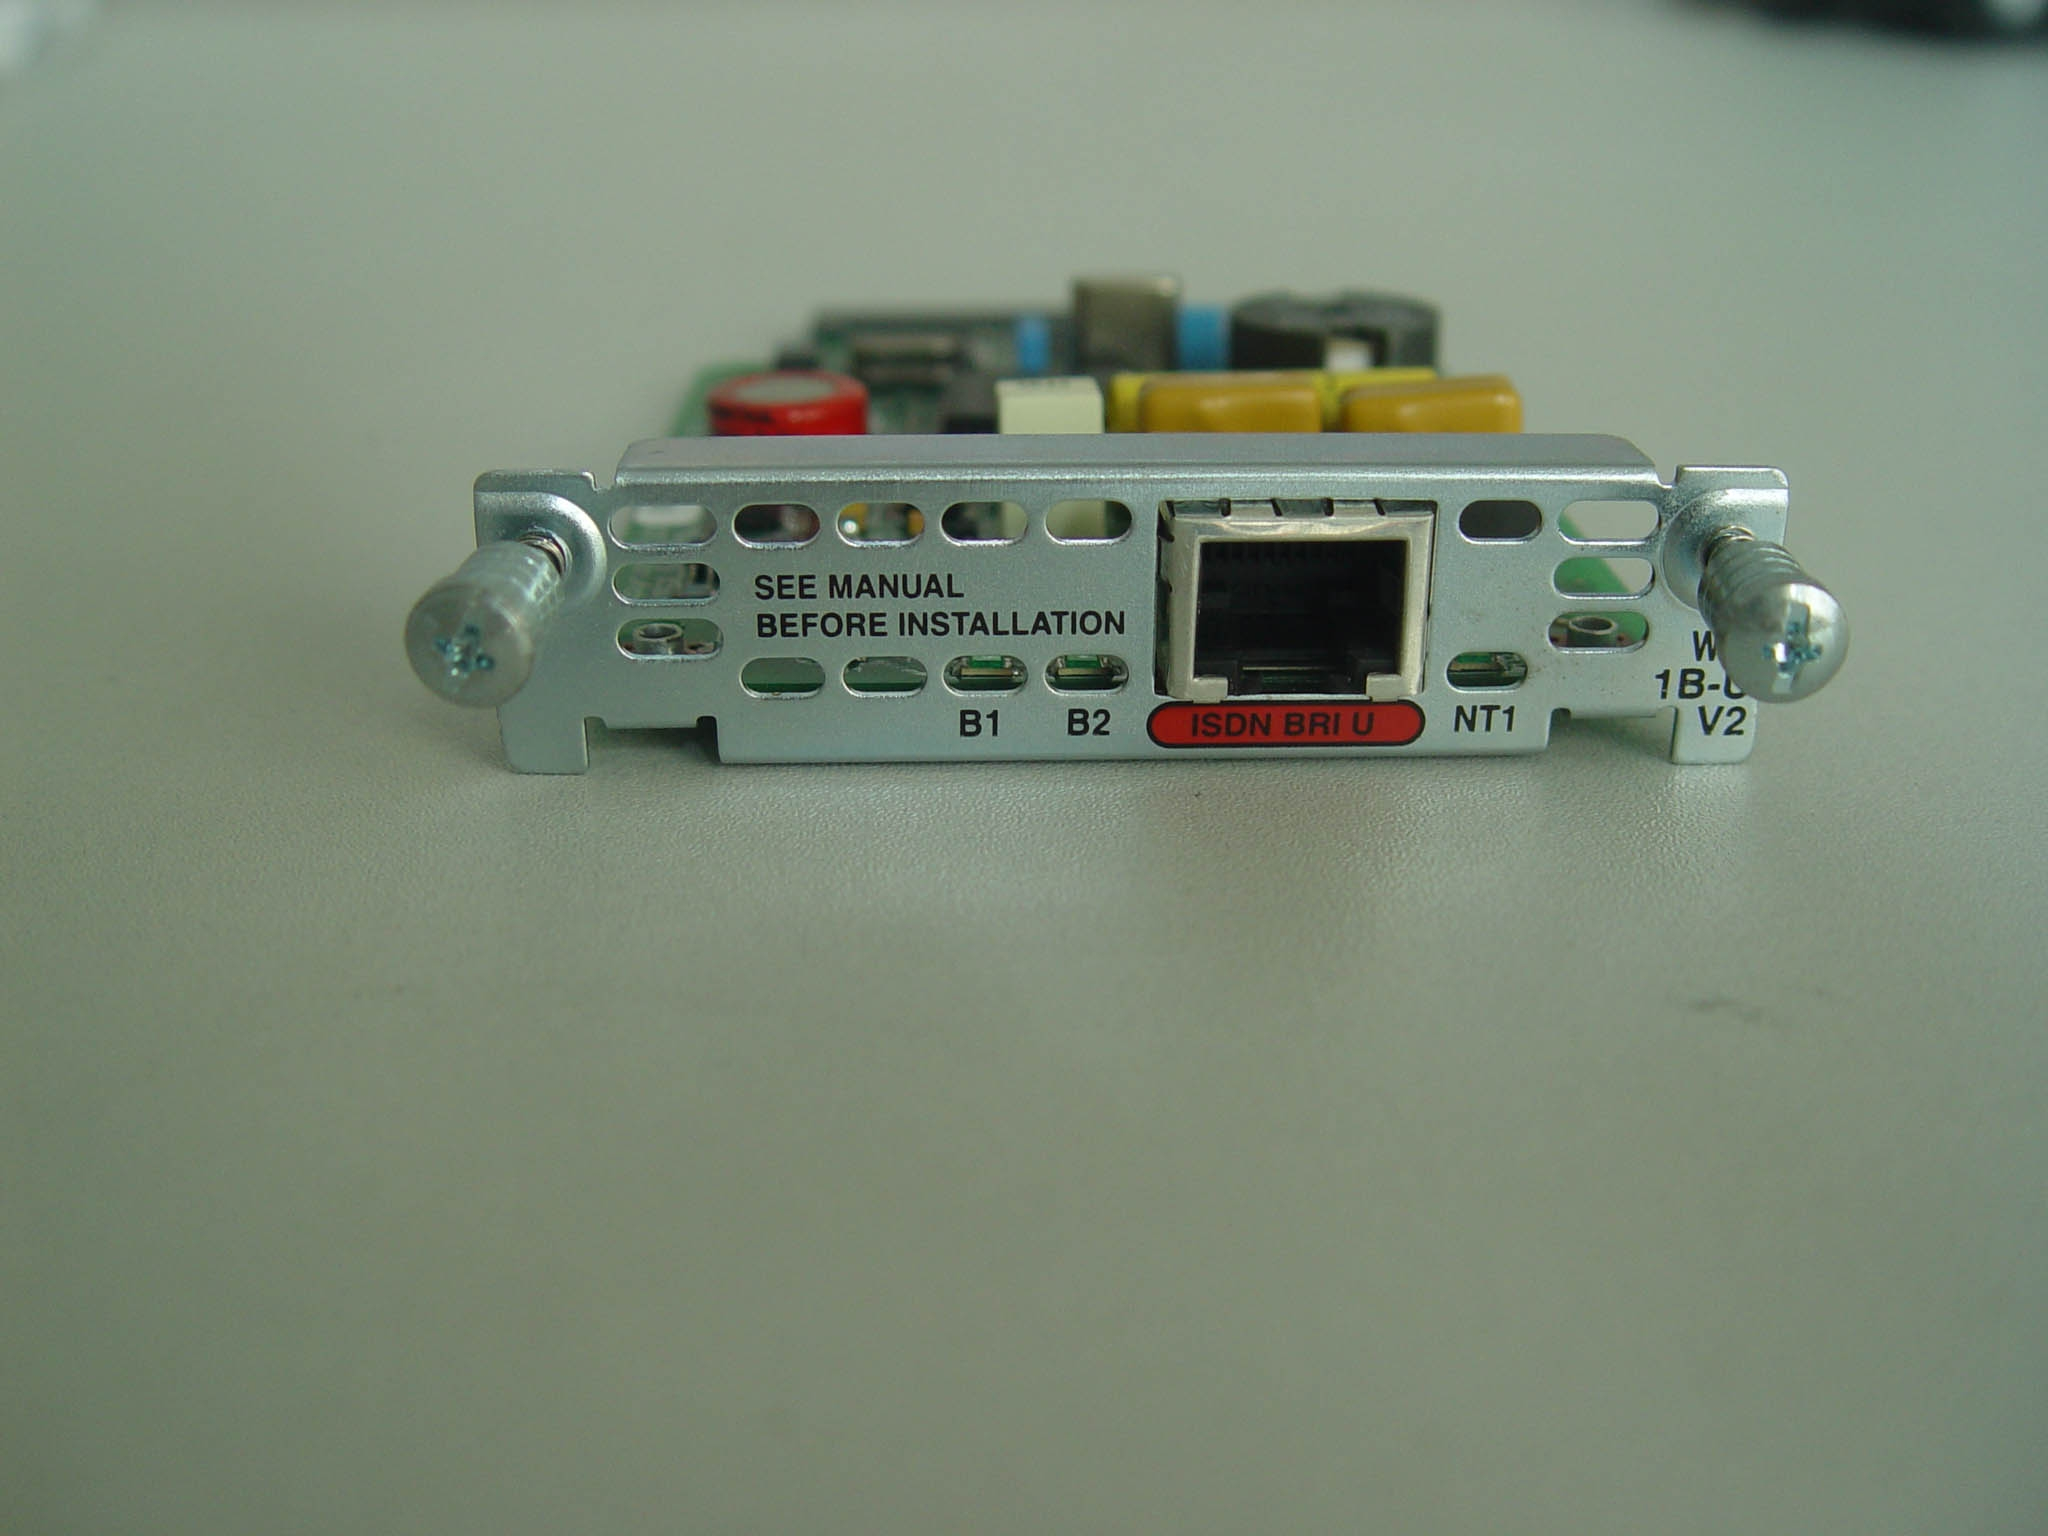 WIC-1B-U-V2 Wan Interface Card